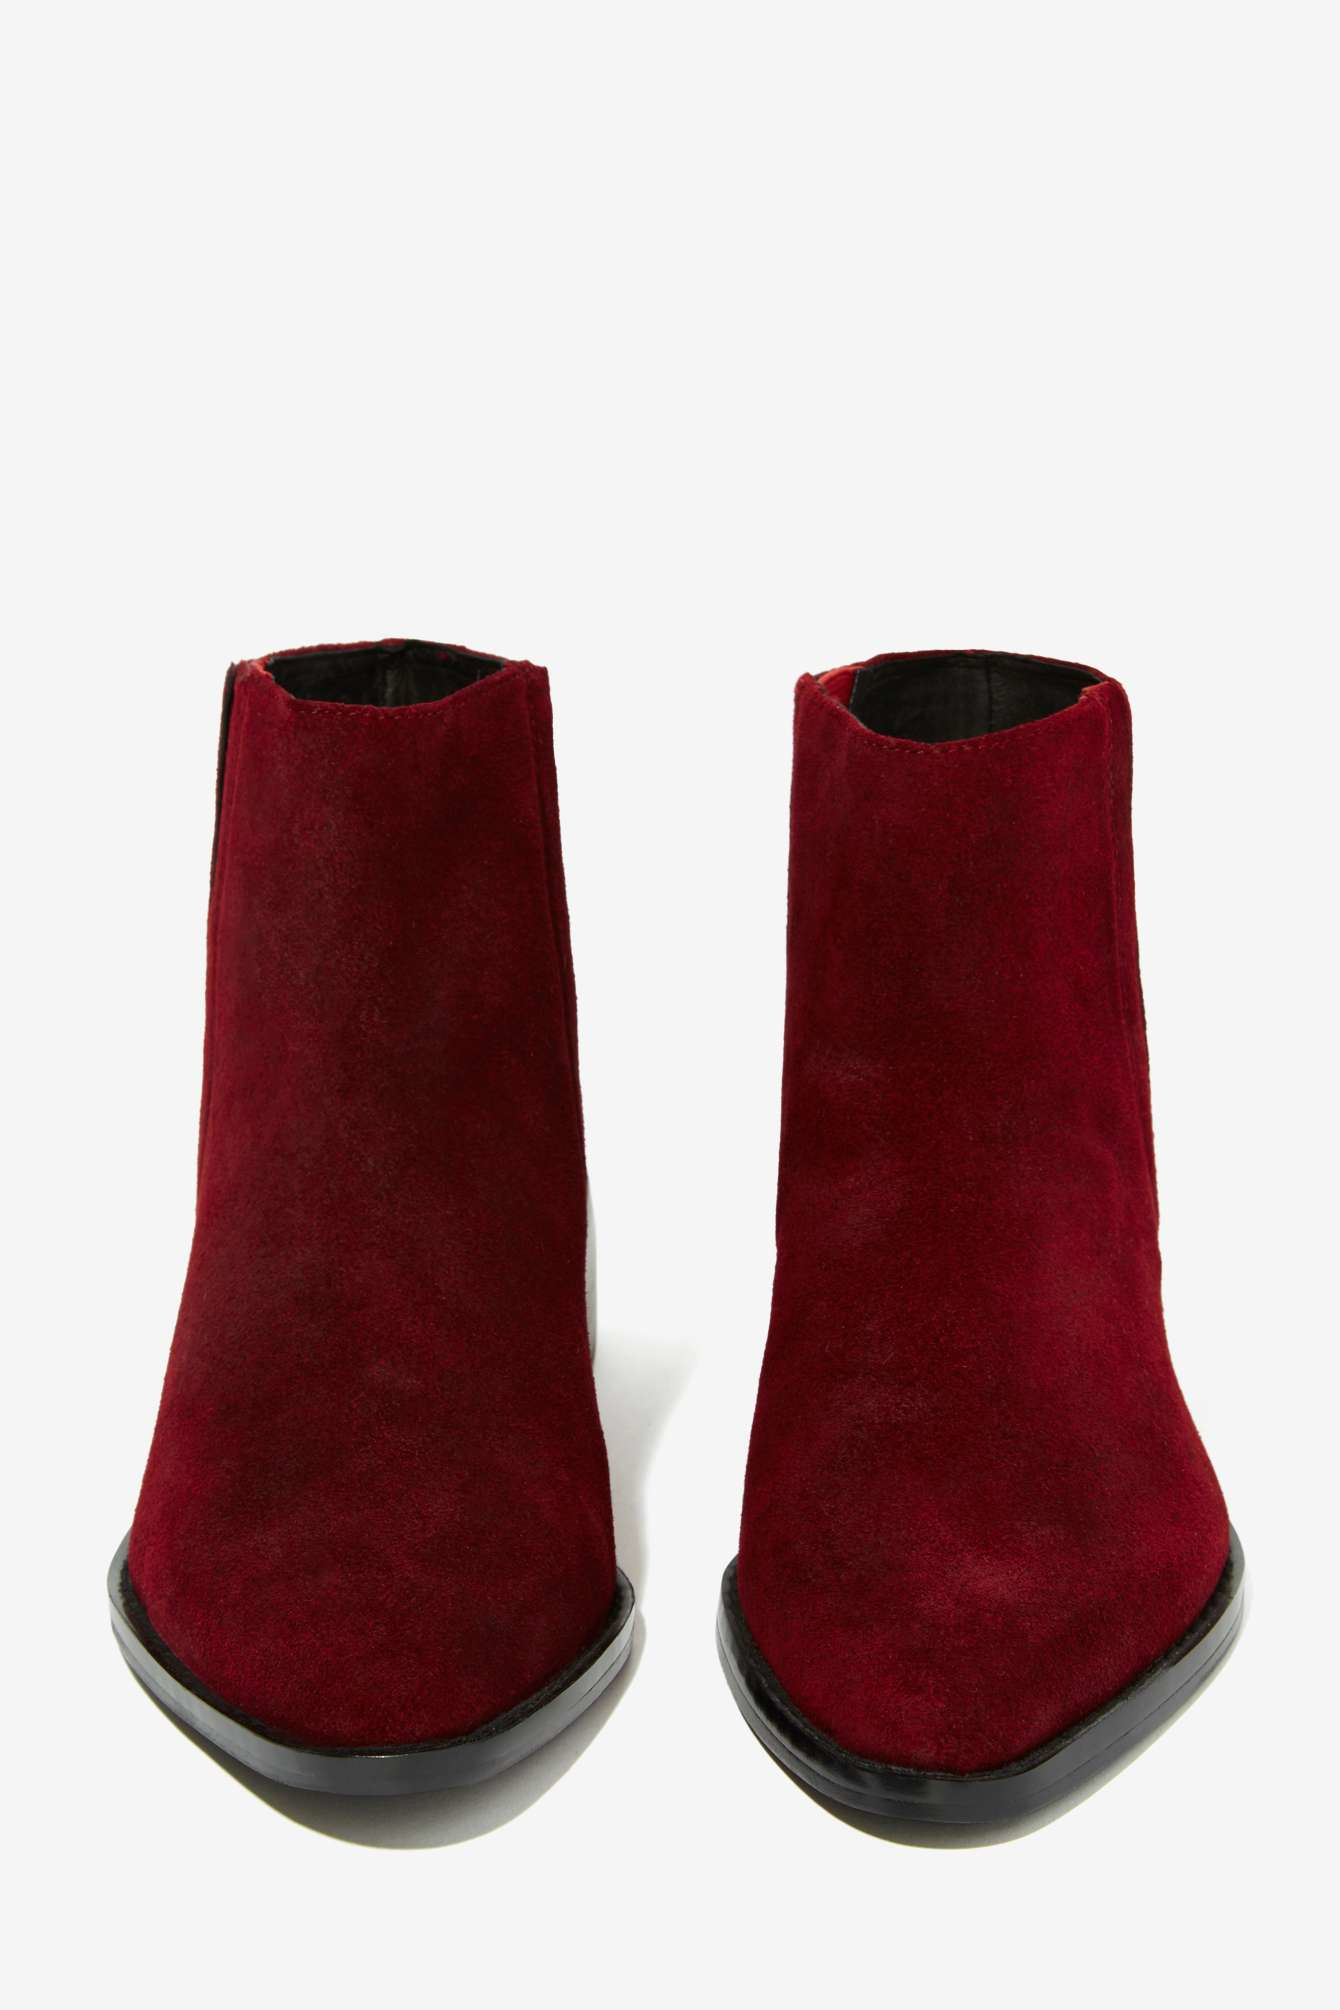 Lyst Grey City West Suede Ankle Boot Burgundy In Red